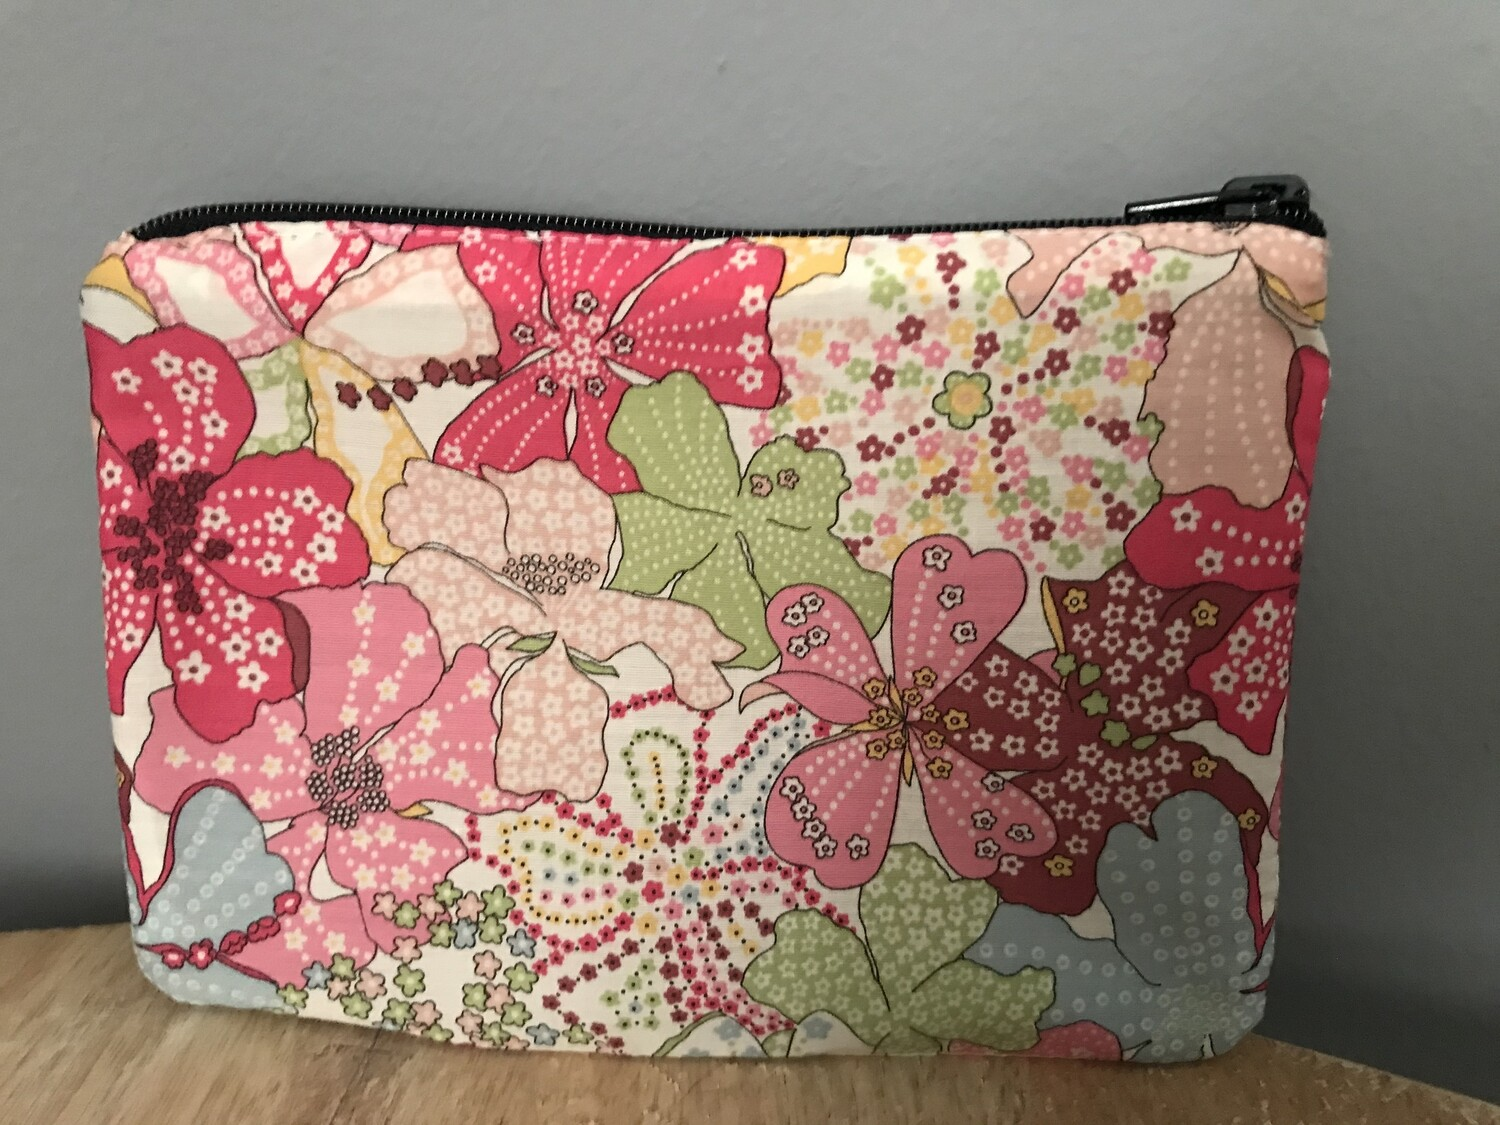 Mauvey Pink Pouch